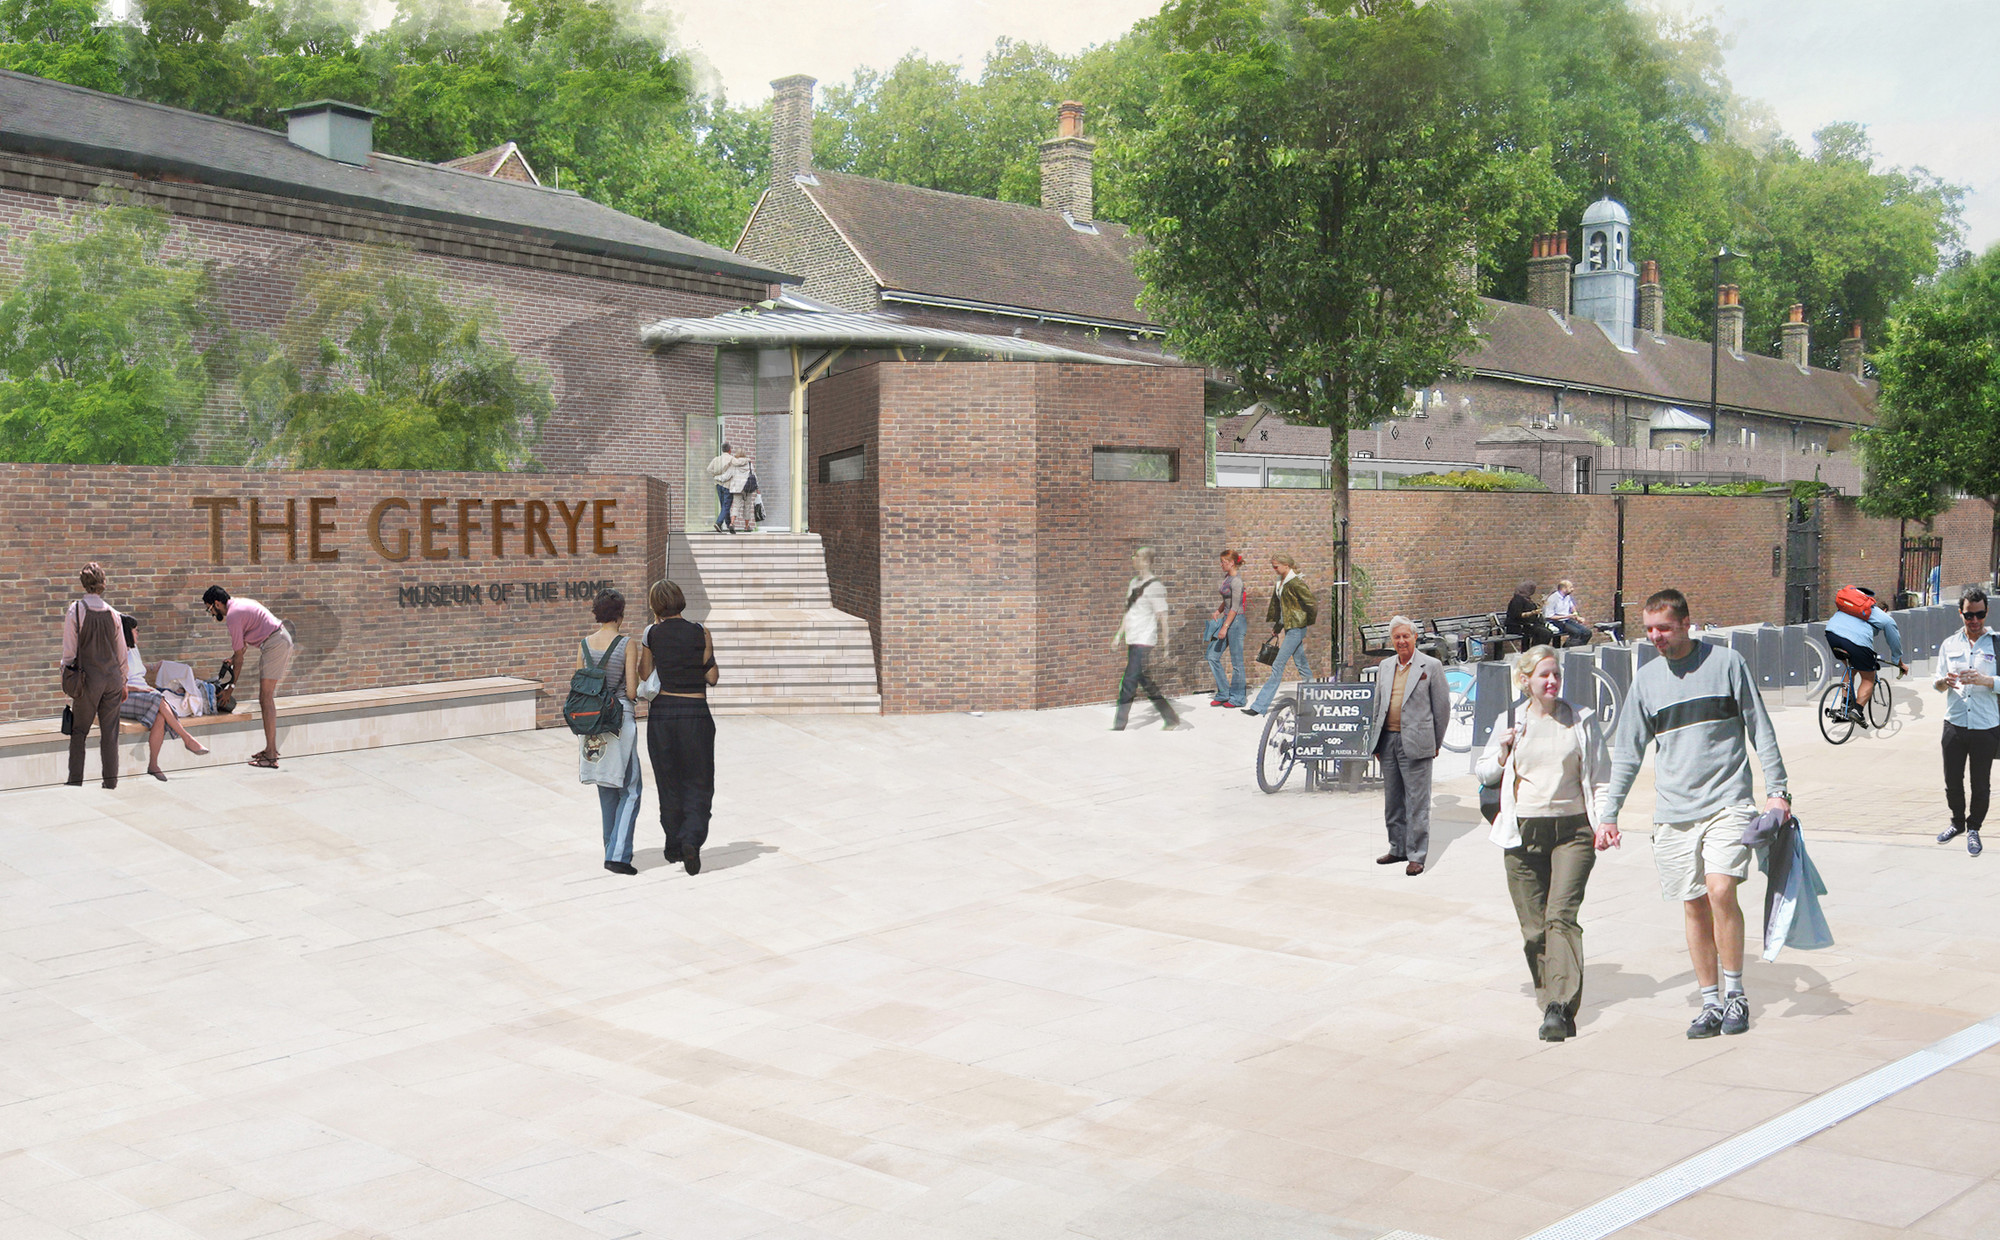 Wright & Wright Unveils Scheme to Replace Chipperfield's Plans for Geffrye Museum, View from Hoxton Station, Geffrye Street. Image © Wright & Wright Architects